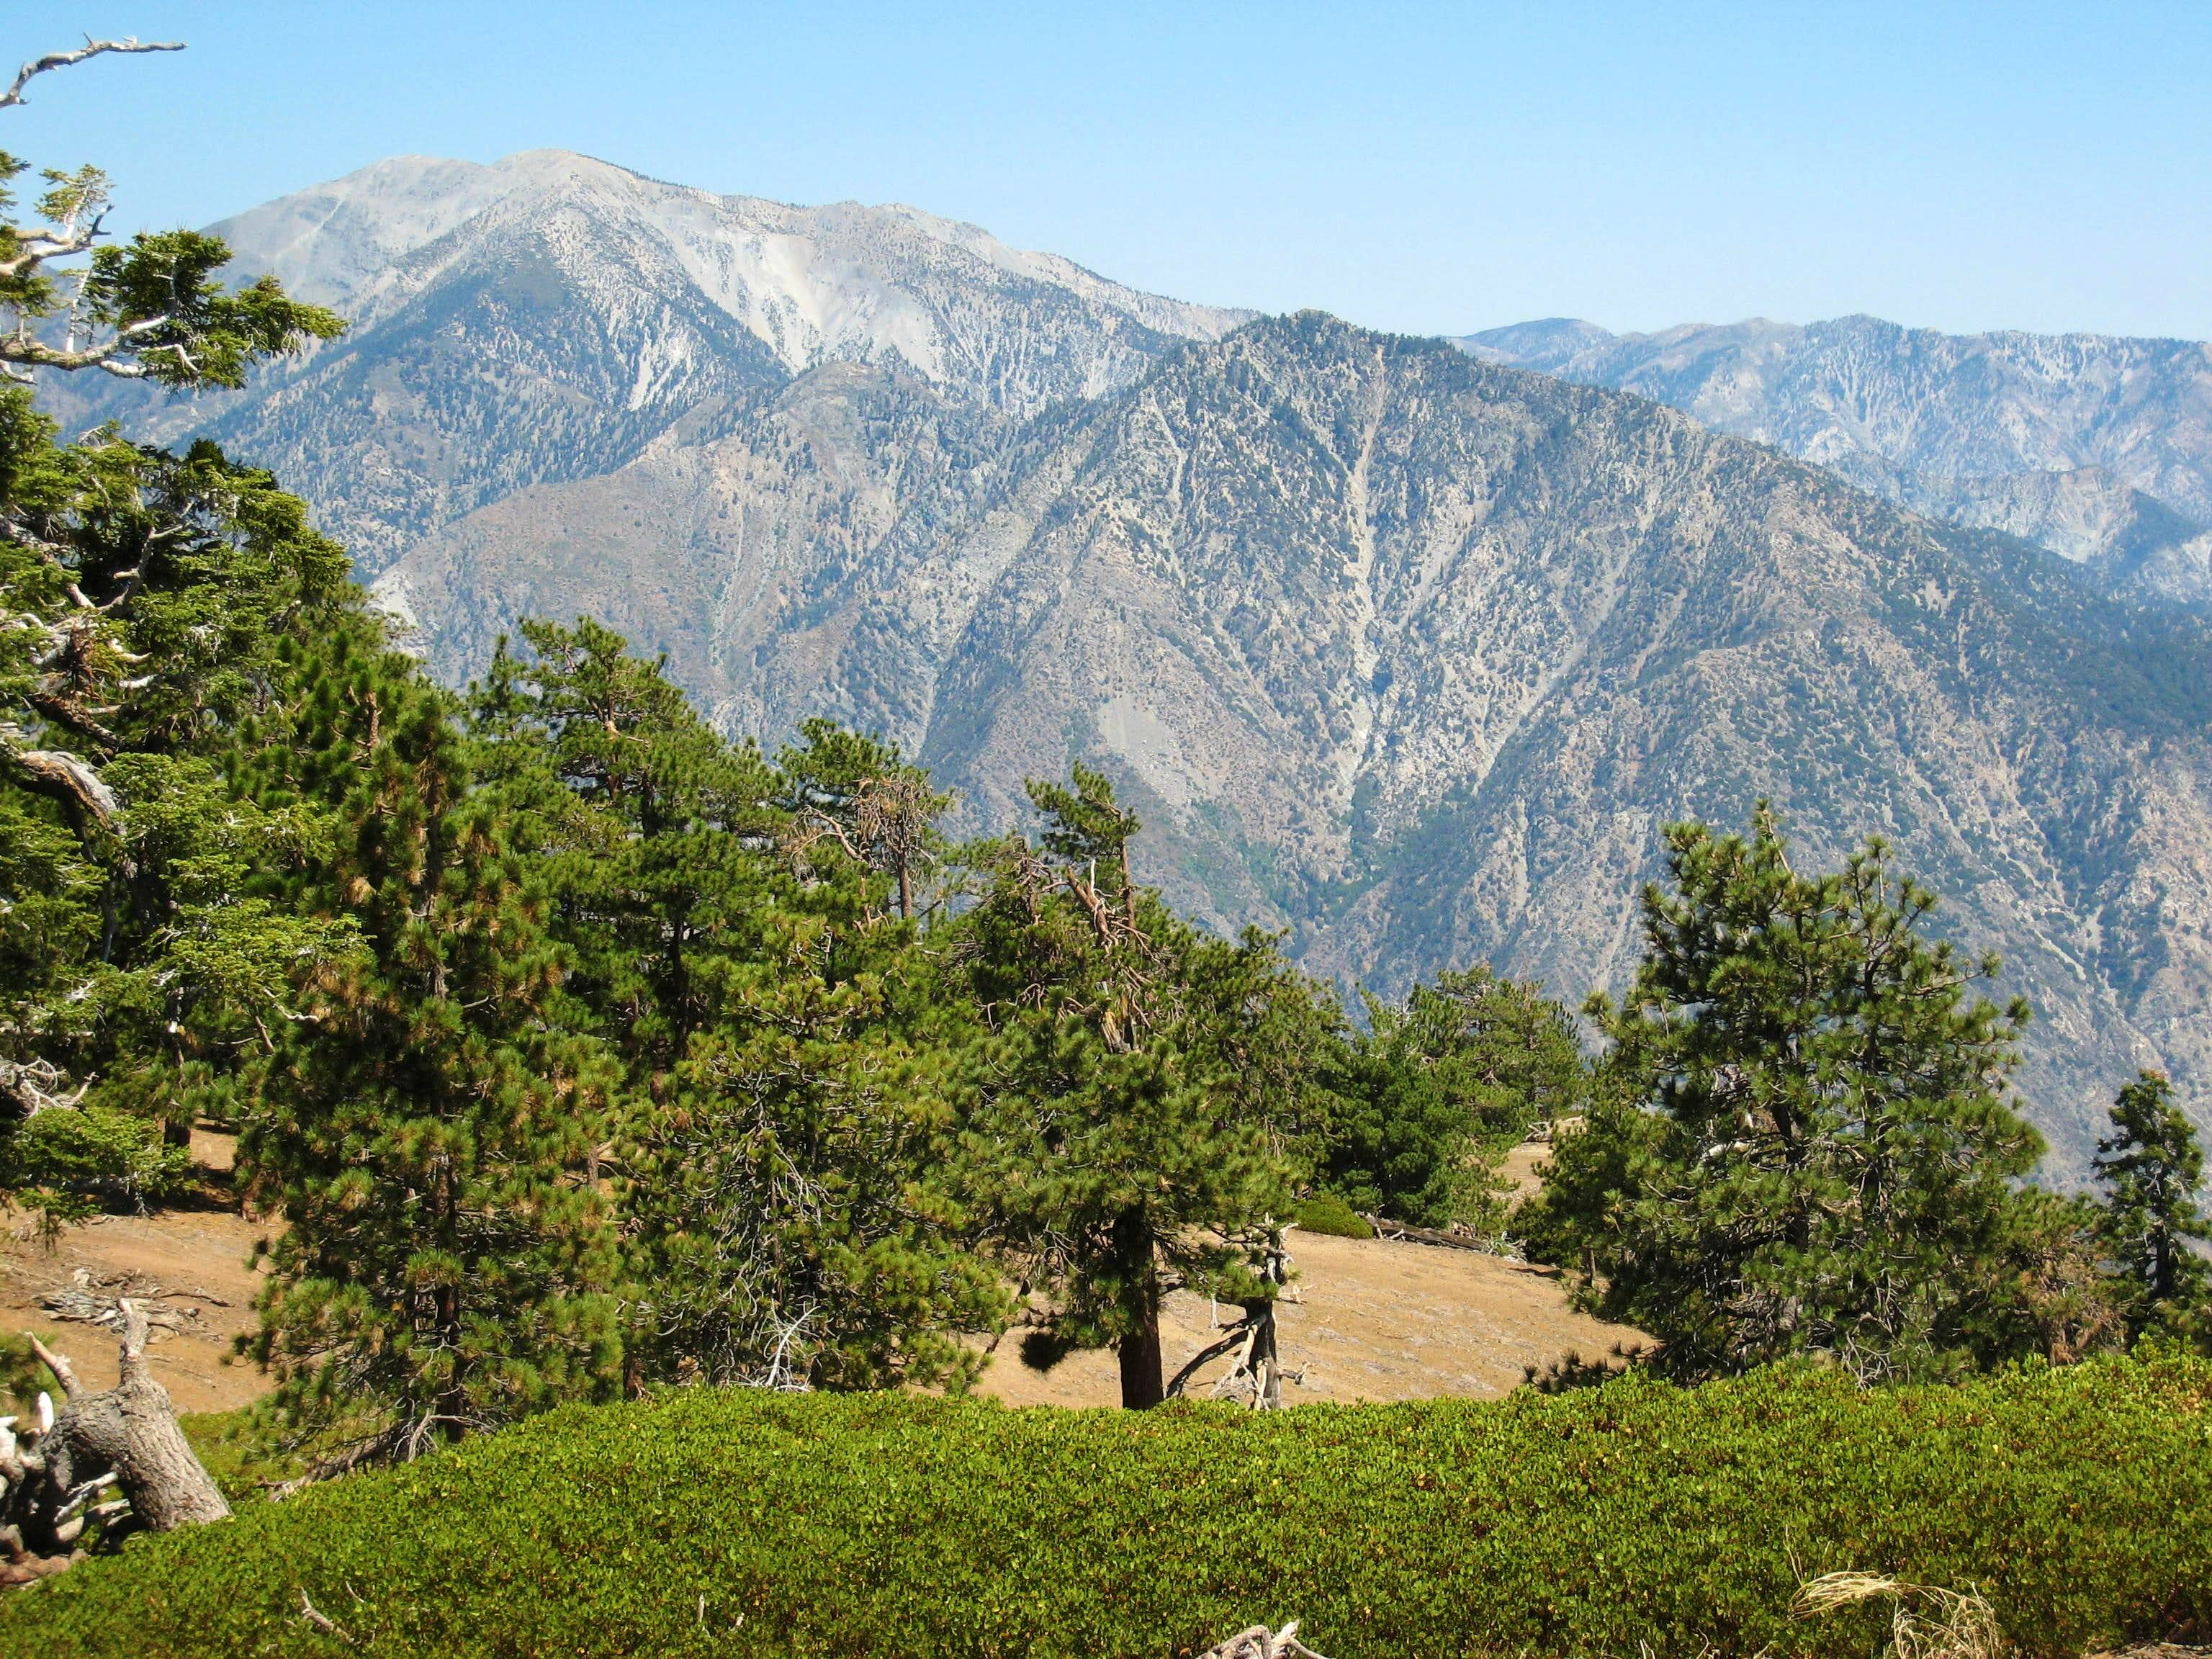 Toughest Day Hikes in San Gabriel Mountains